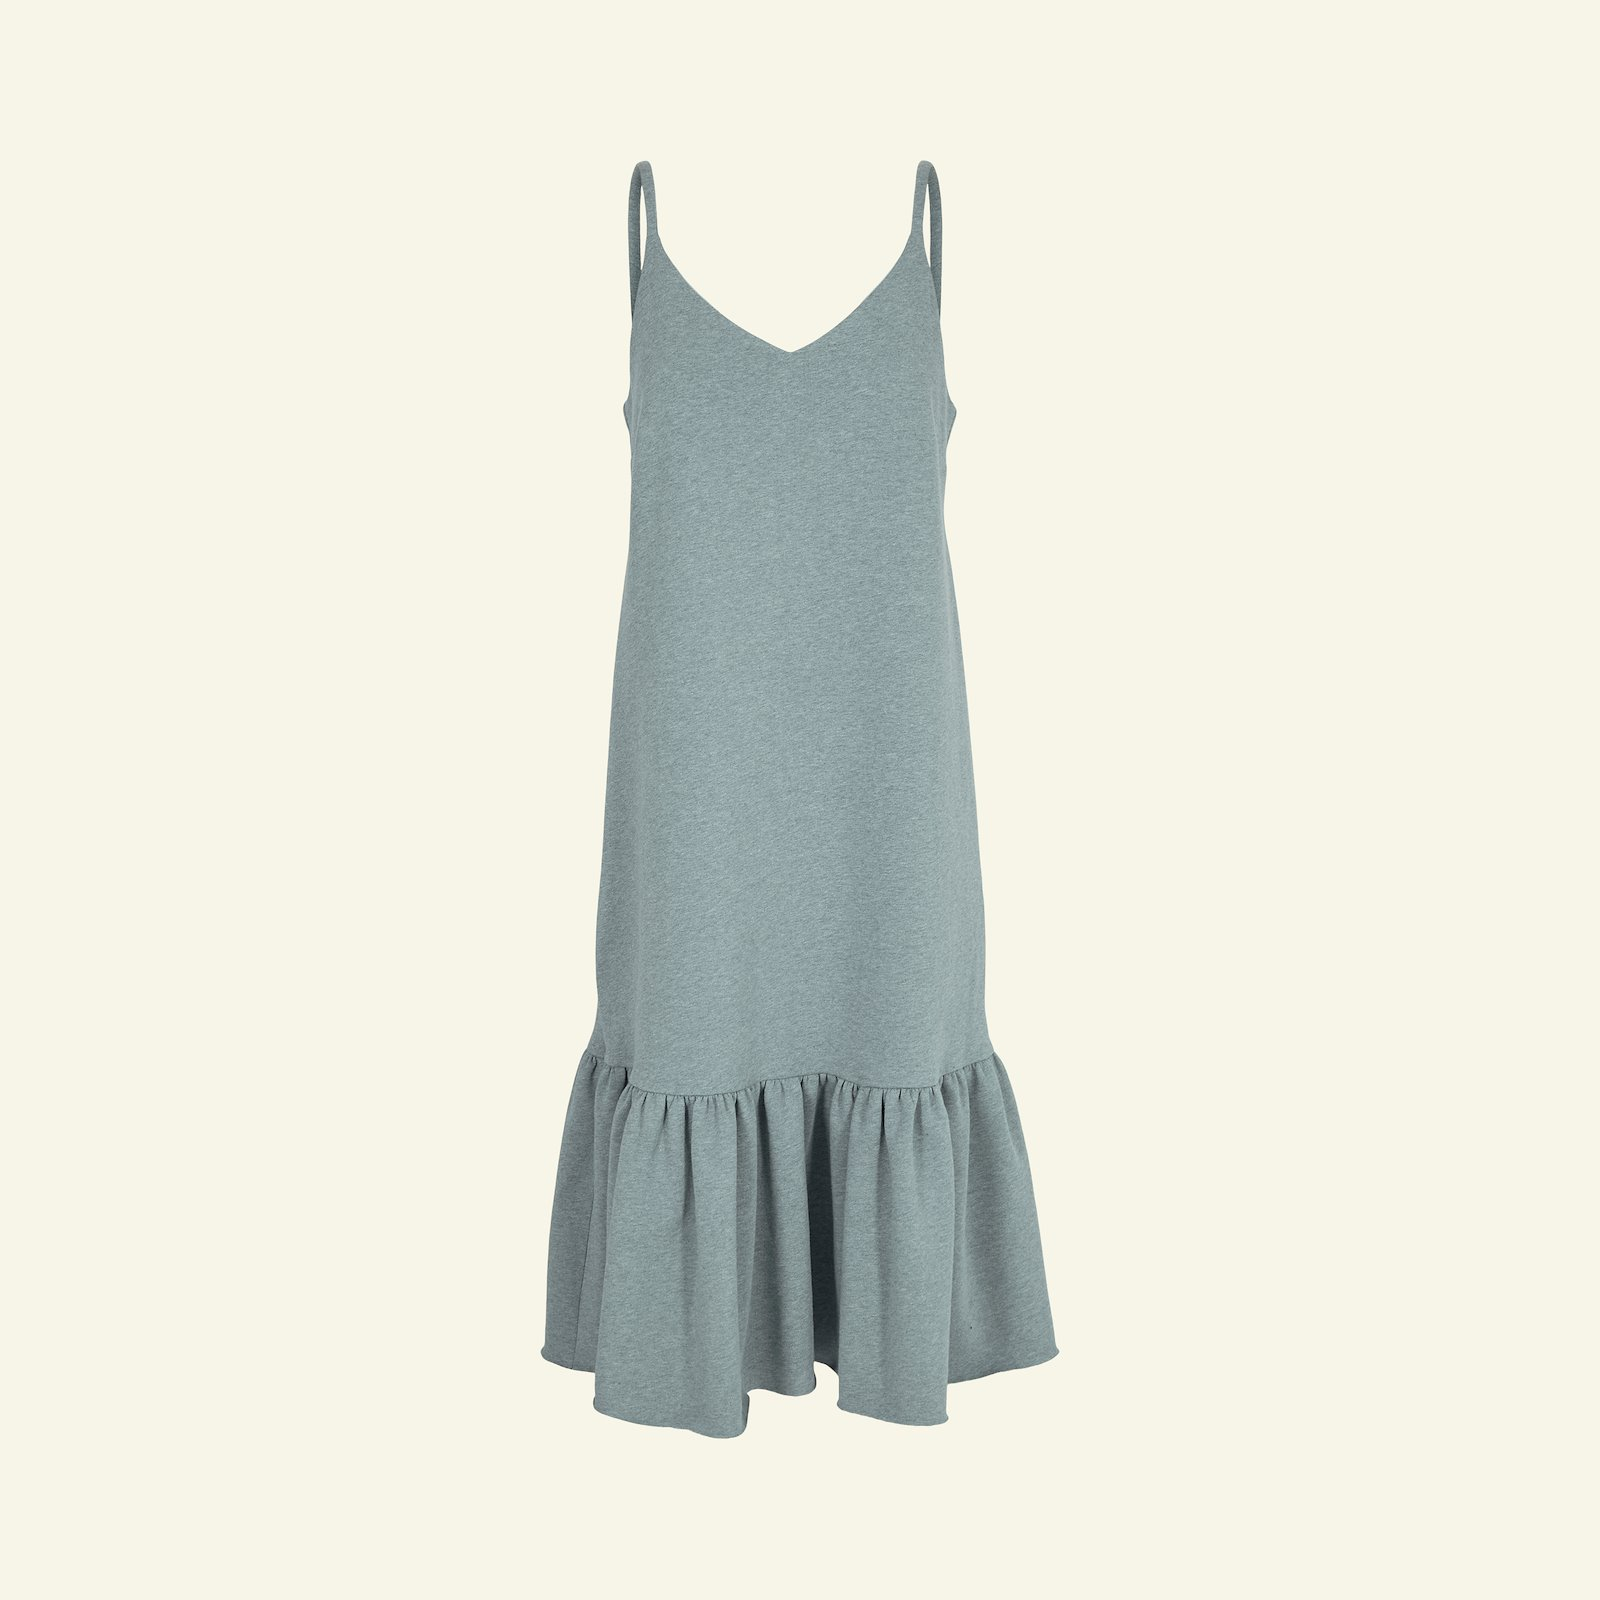 Strap dress and top, 36/8 p23146_211764_sskit